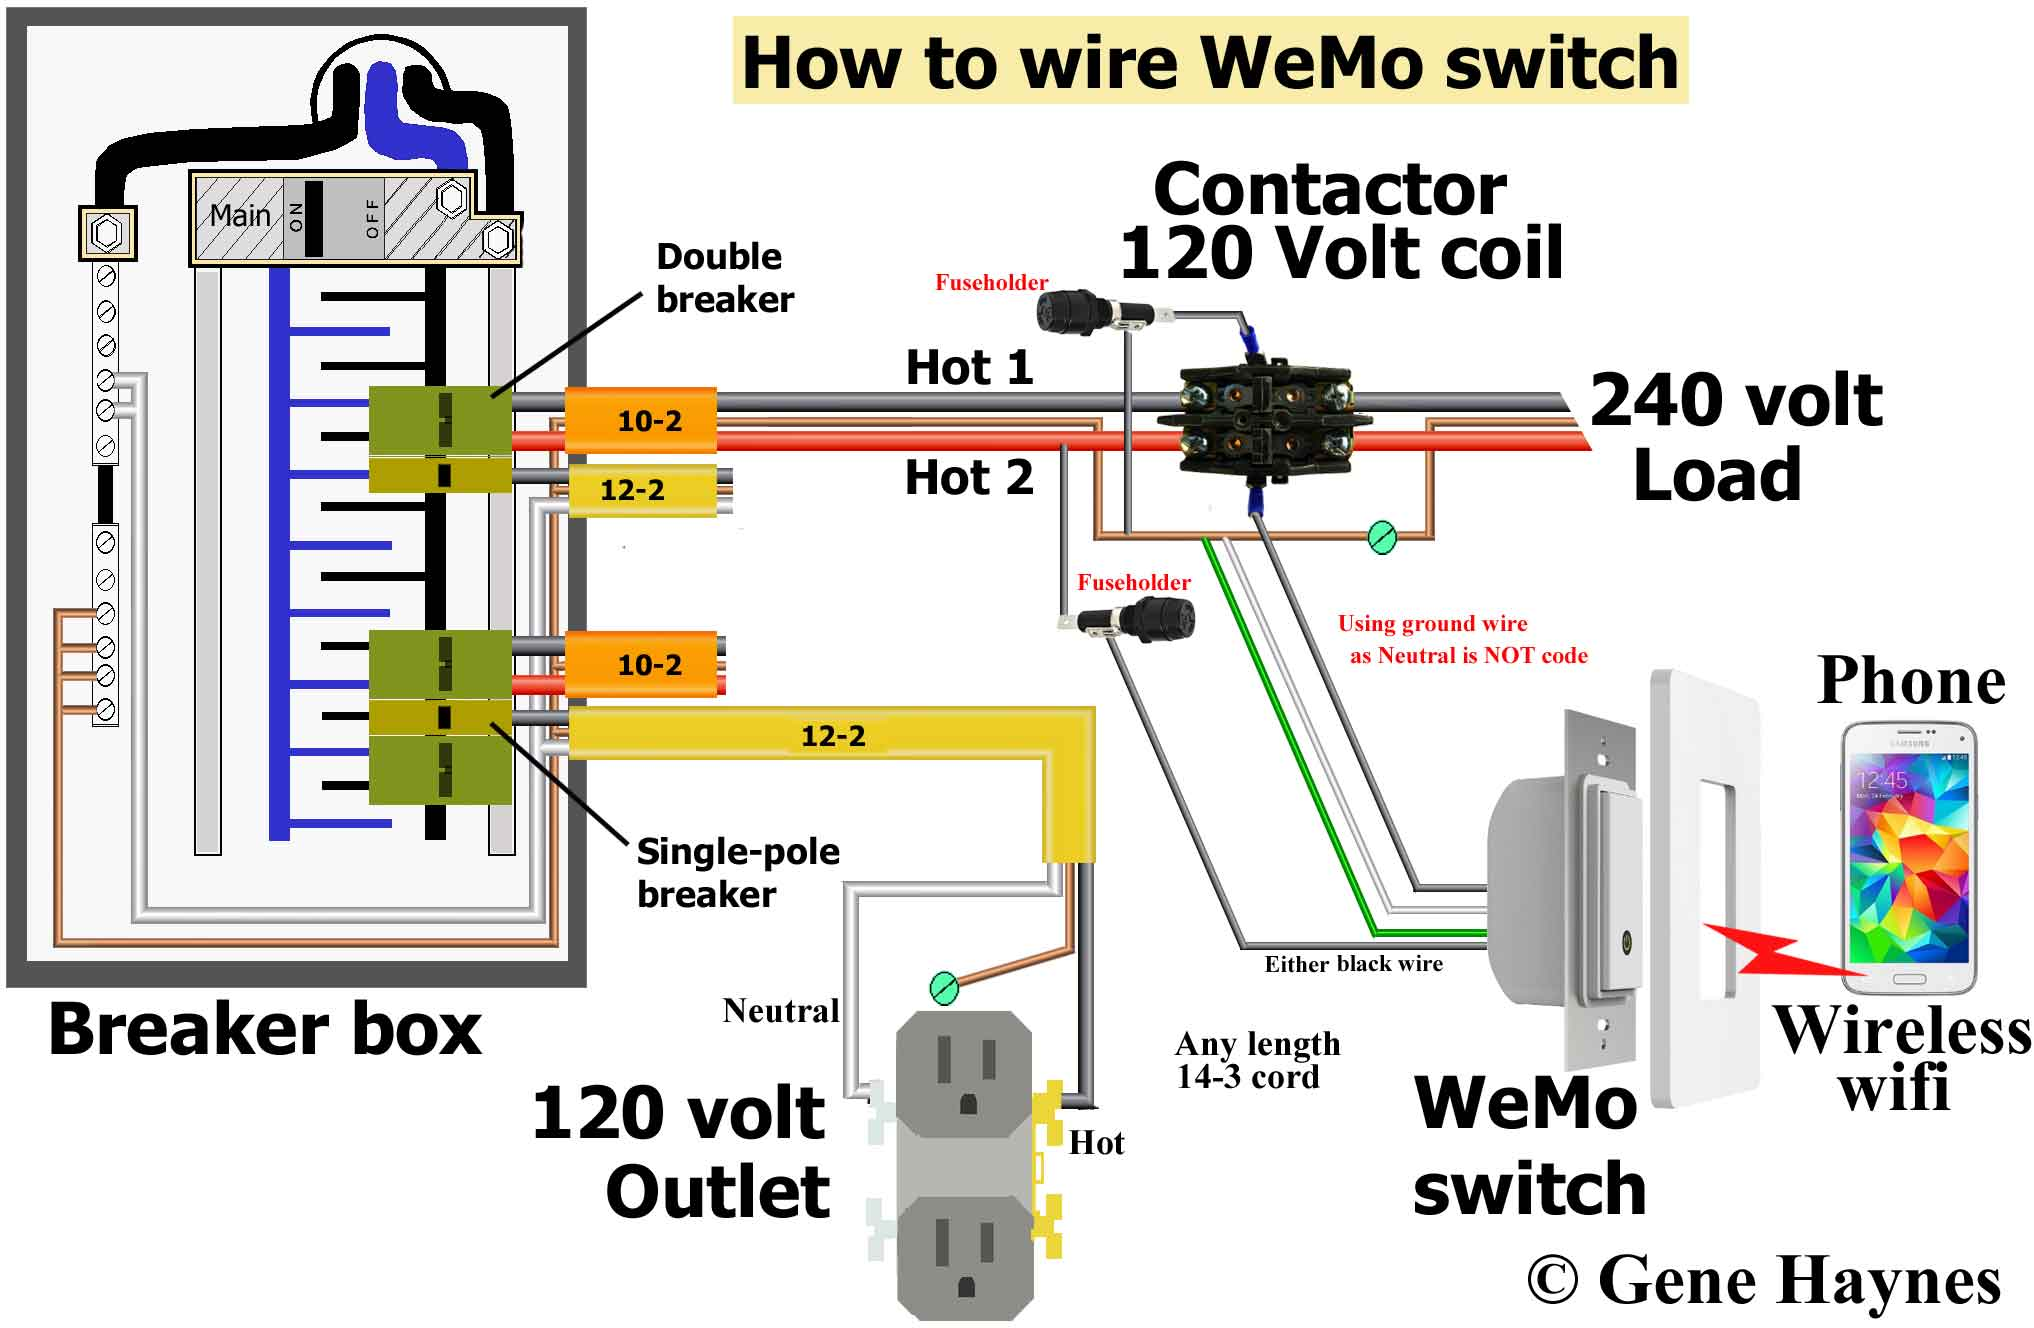 WeMo switch wiring illustration 33 not code control 240 volt with wemo wemo switch wiring diagram at mifinder.co